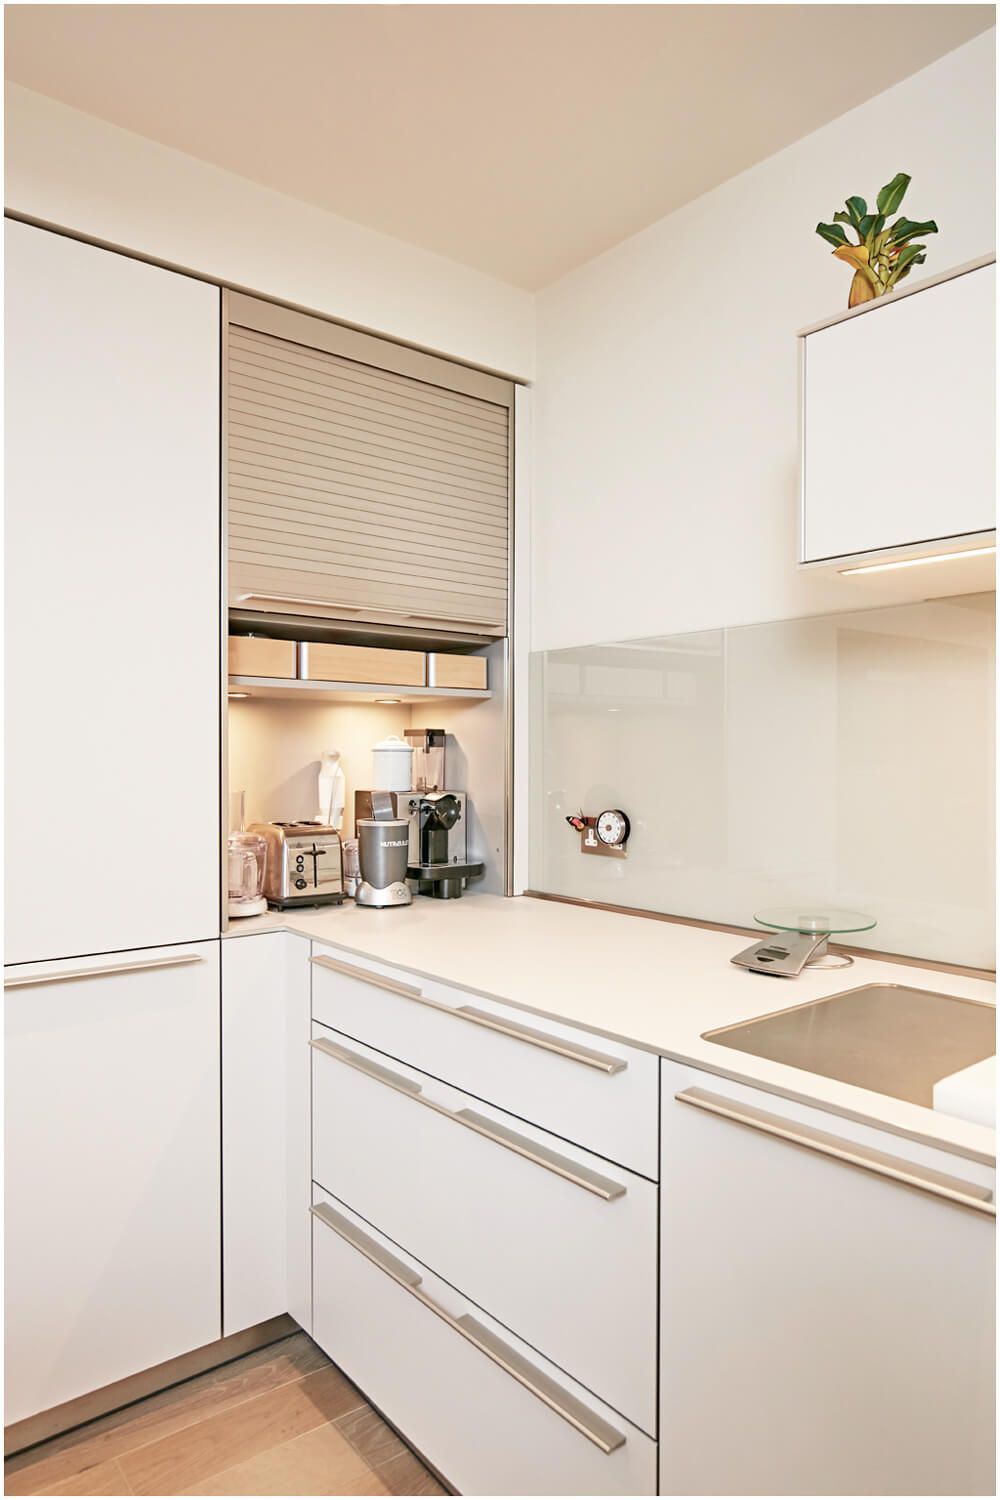 A Bulthaup B3 Roller Shutter Cabinet Creates A Space To Hide